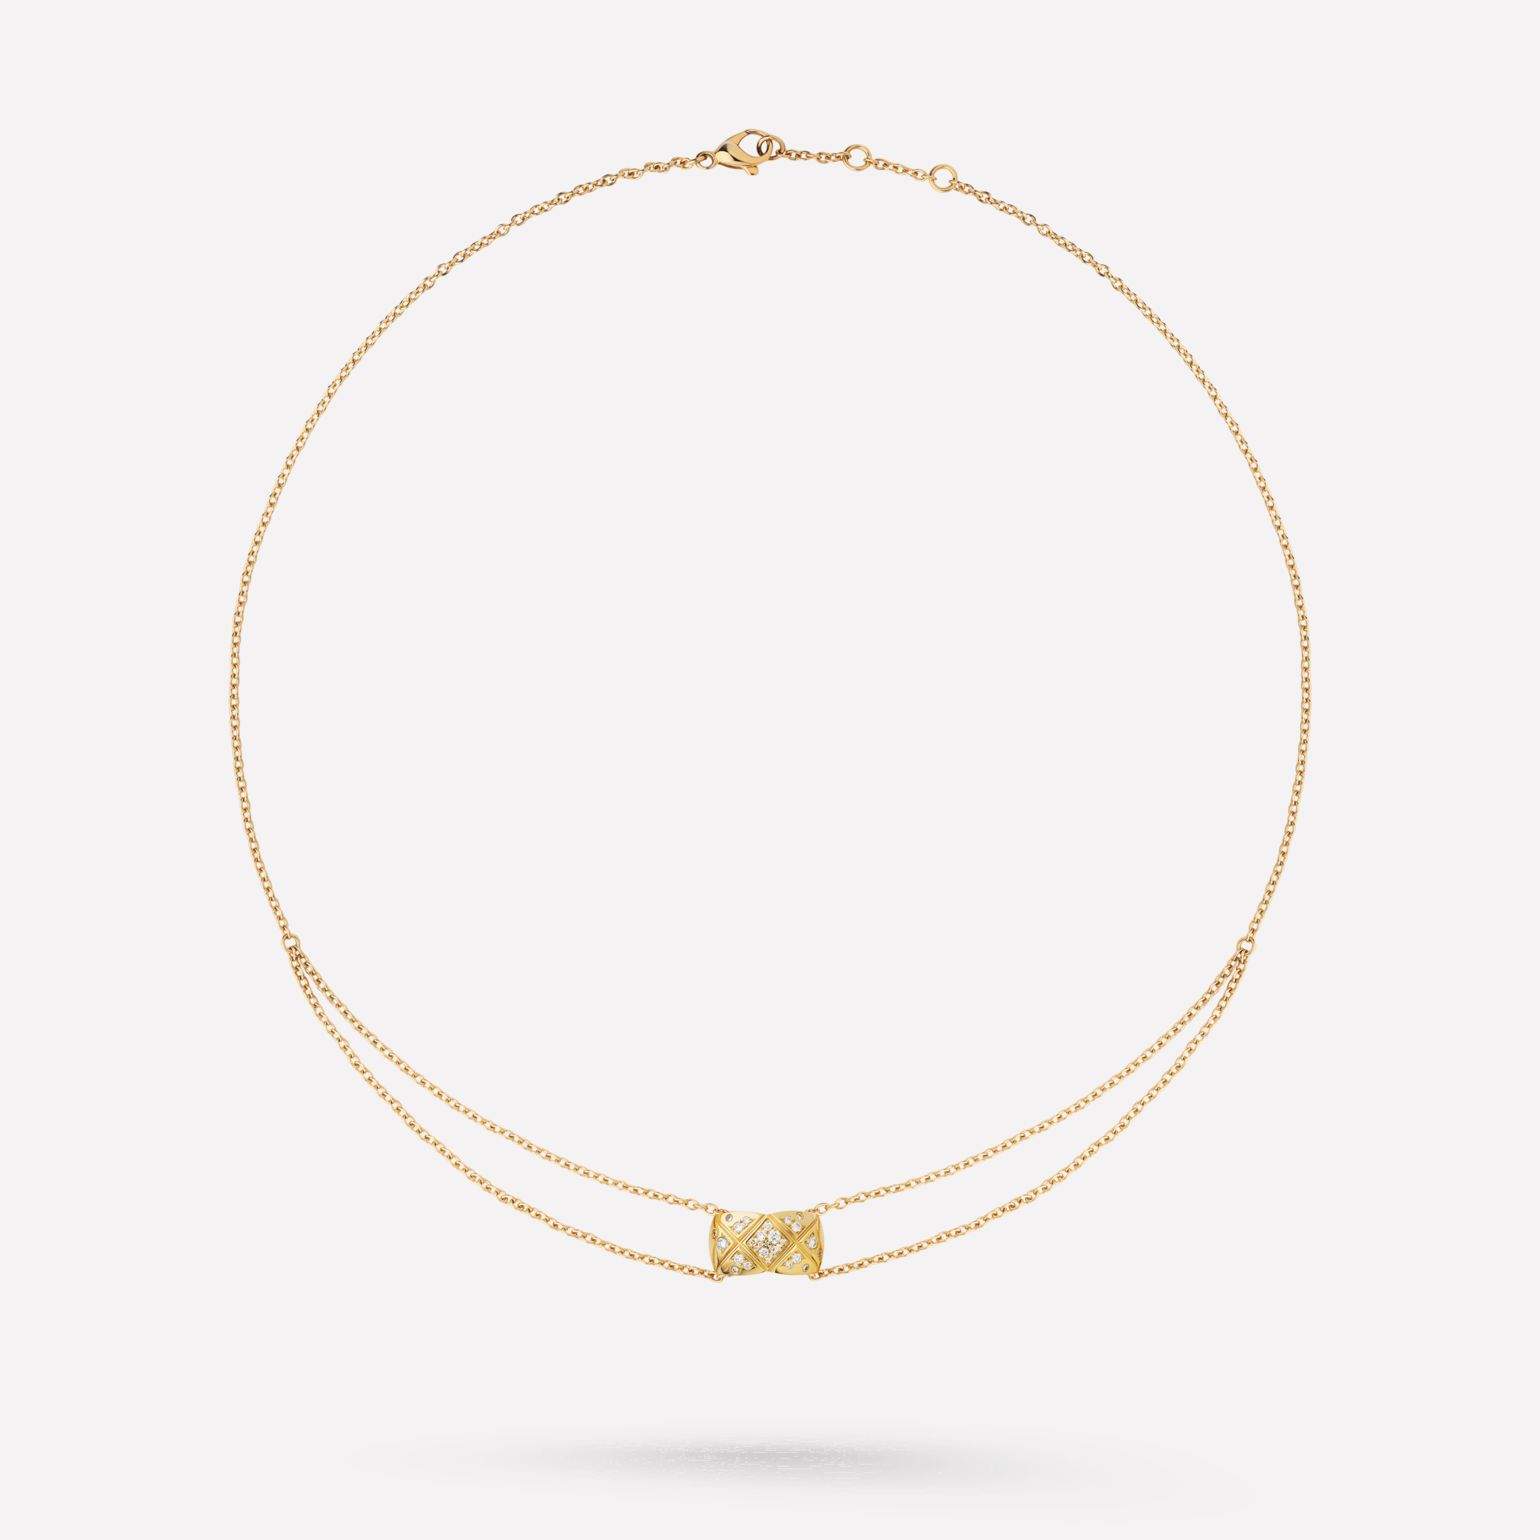 Coco Crush necklace Quilted motif, 18K yellow gold, diamonds